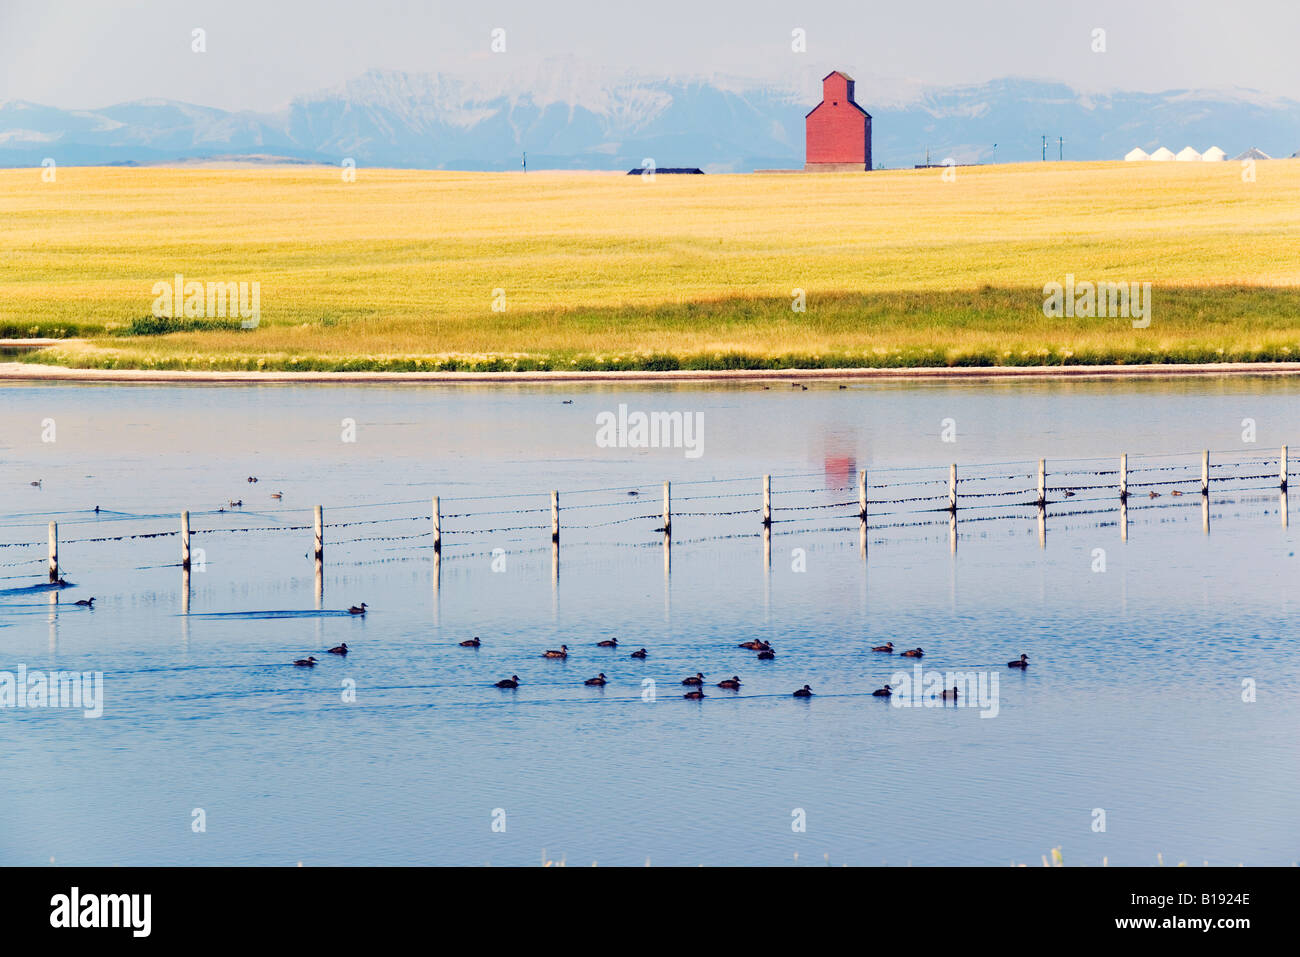 Slew with ducks and Grain elevator, Azure, The Foothills, Alberta, Canada. - Stock Image